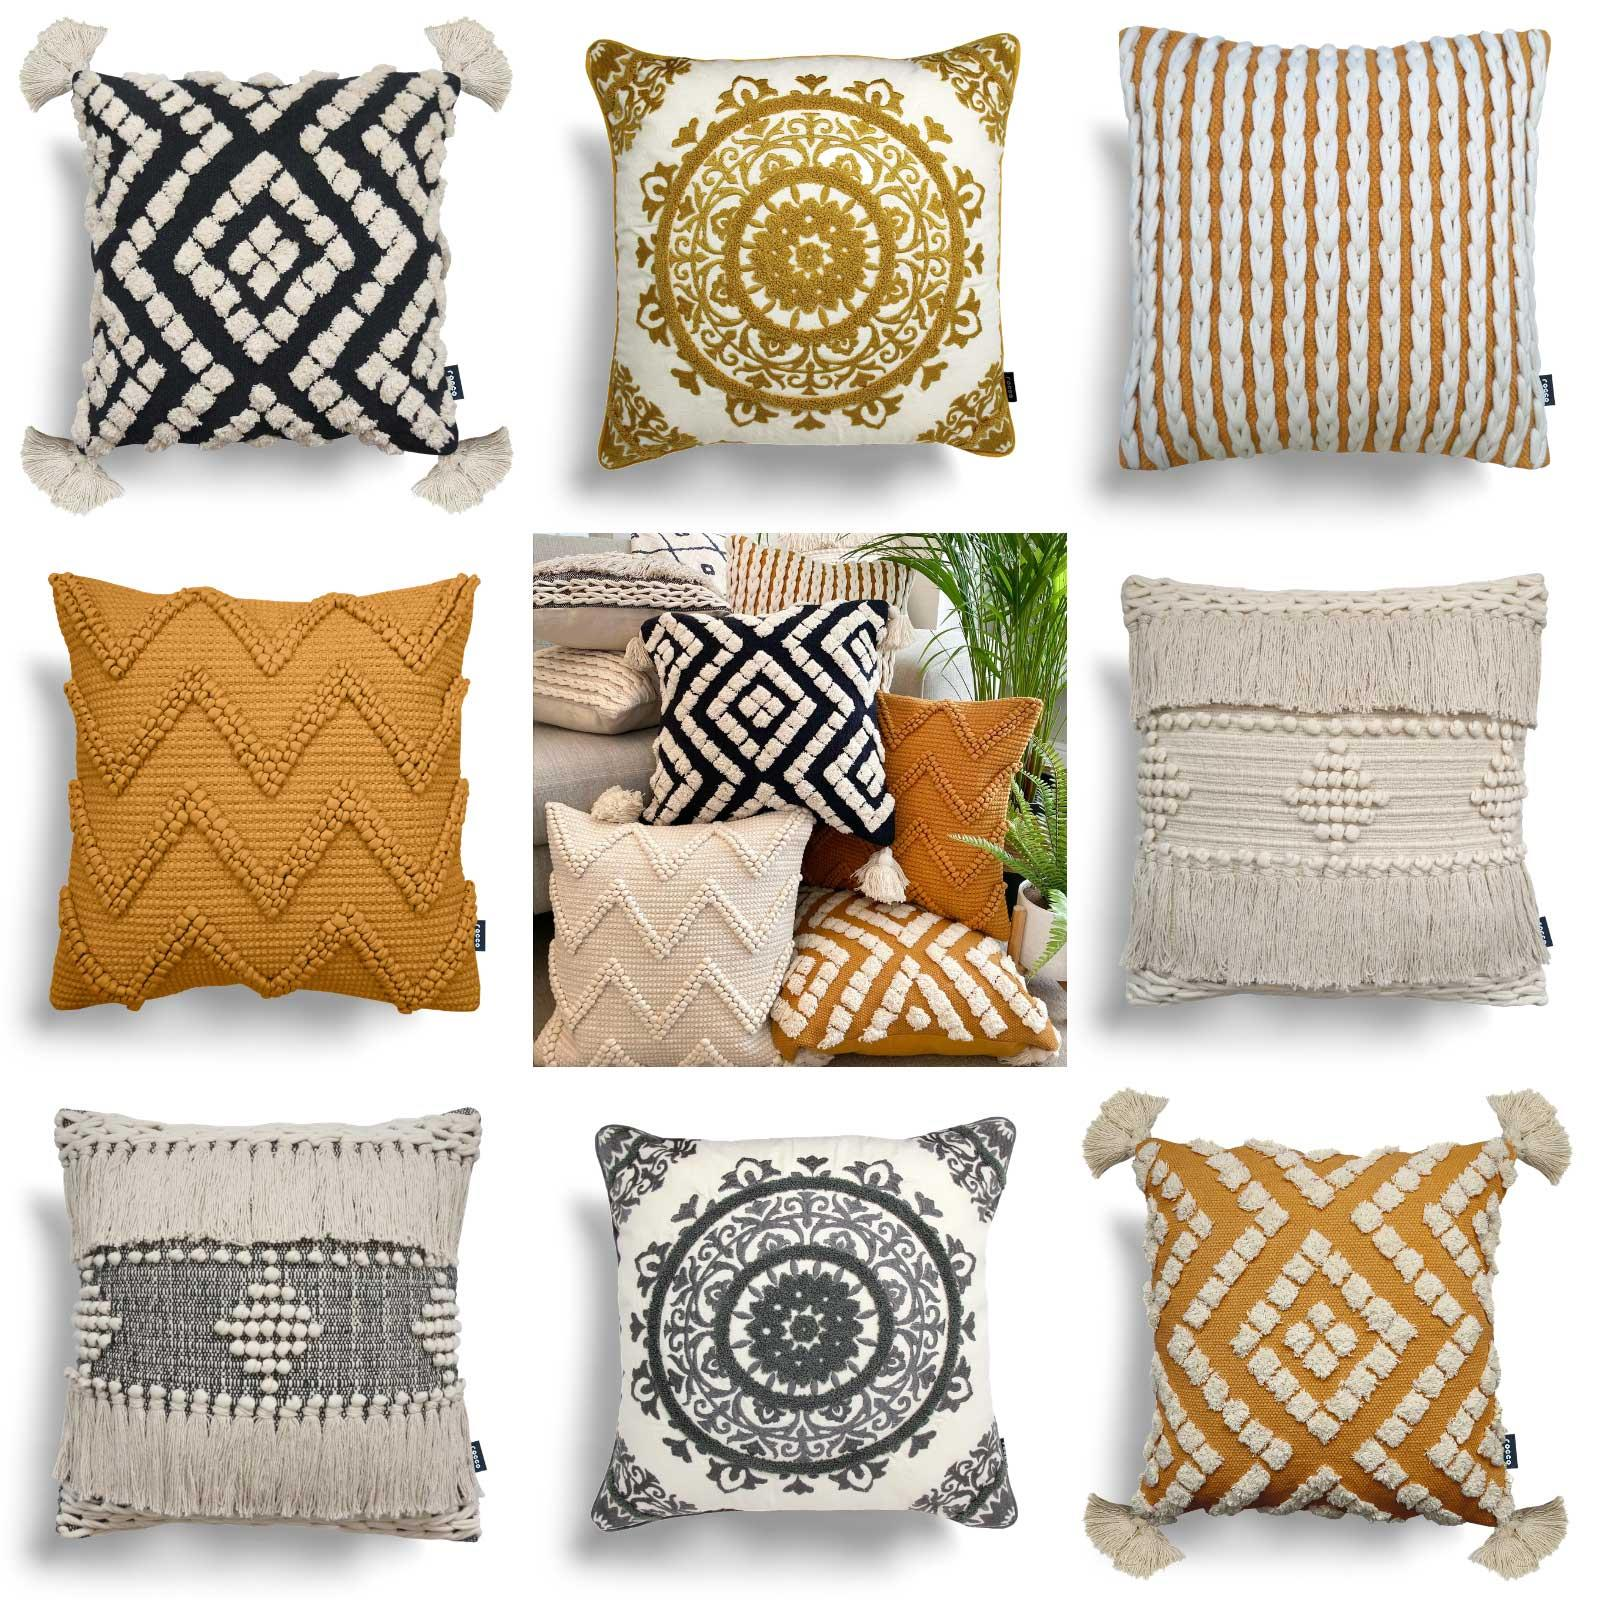 Ochre Cushion Covers Grey Rocco Boho Tufted Tassel Cream Filled Cushions 17x17 Ebay